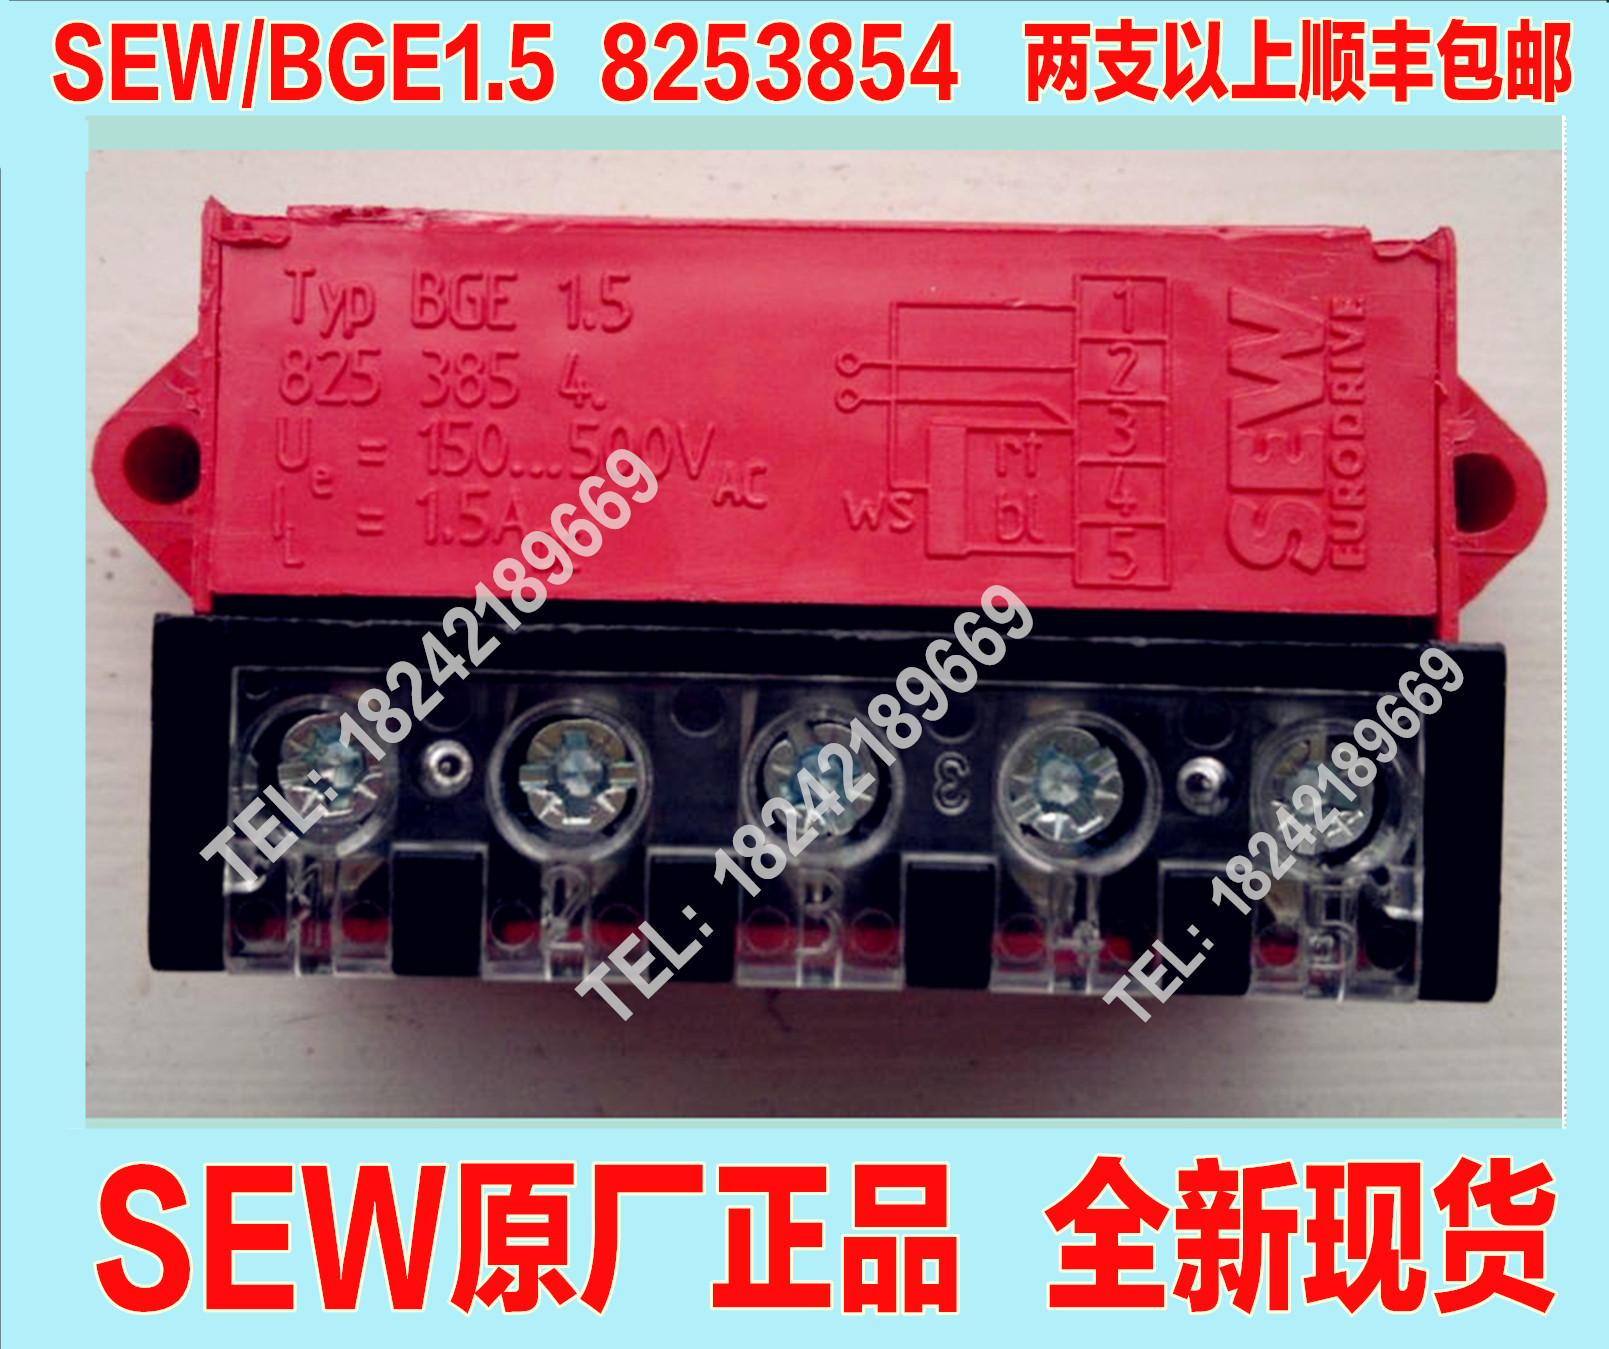 Terrific Usd 81 61 Original Imported Bge1 5 825 385 4 Sew Motor Brake Wiring Digital Resources Spoatbouhousnl